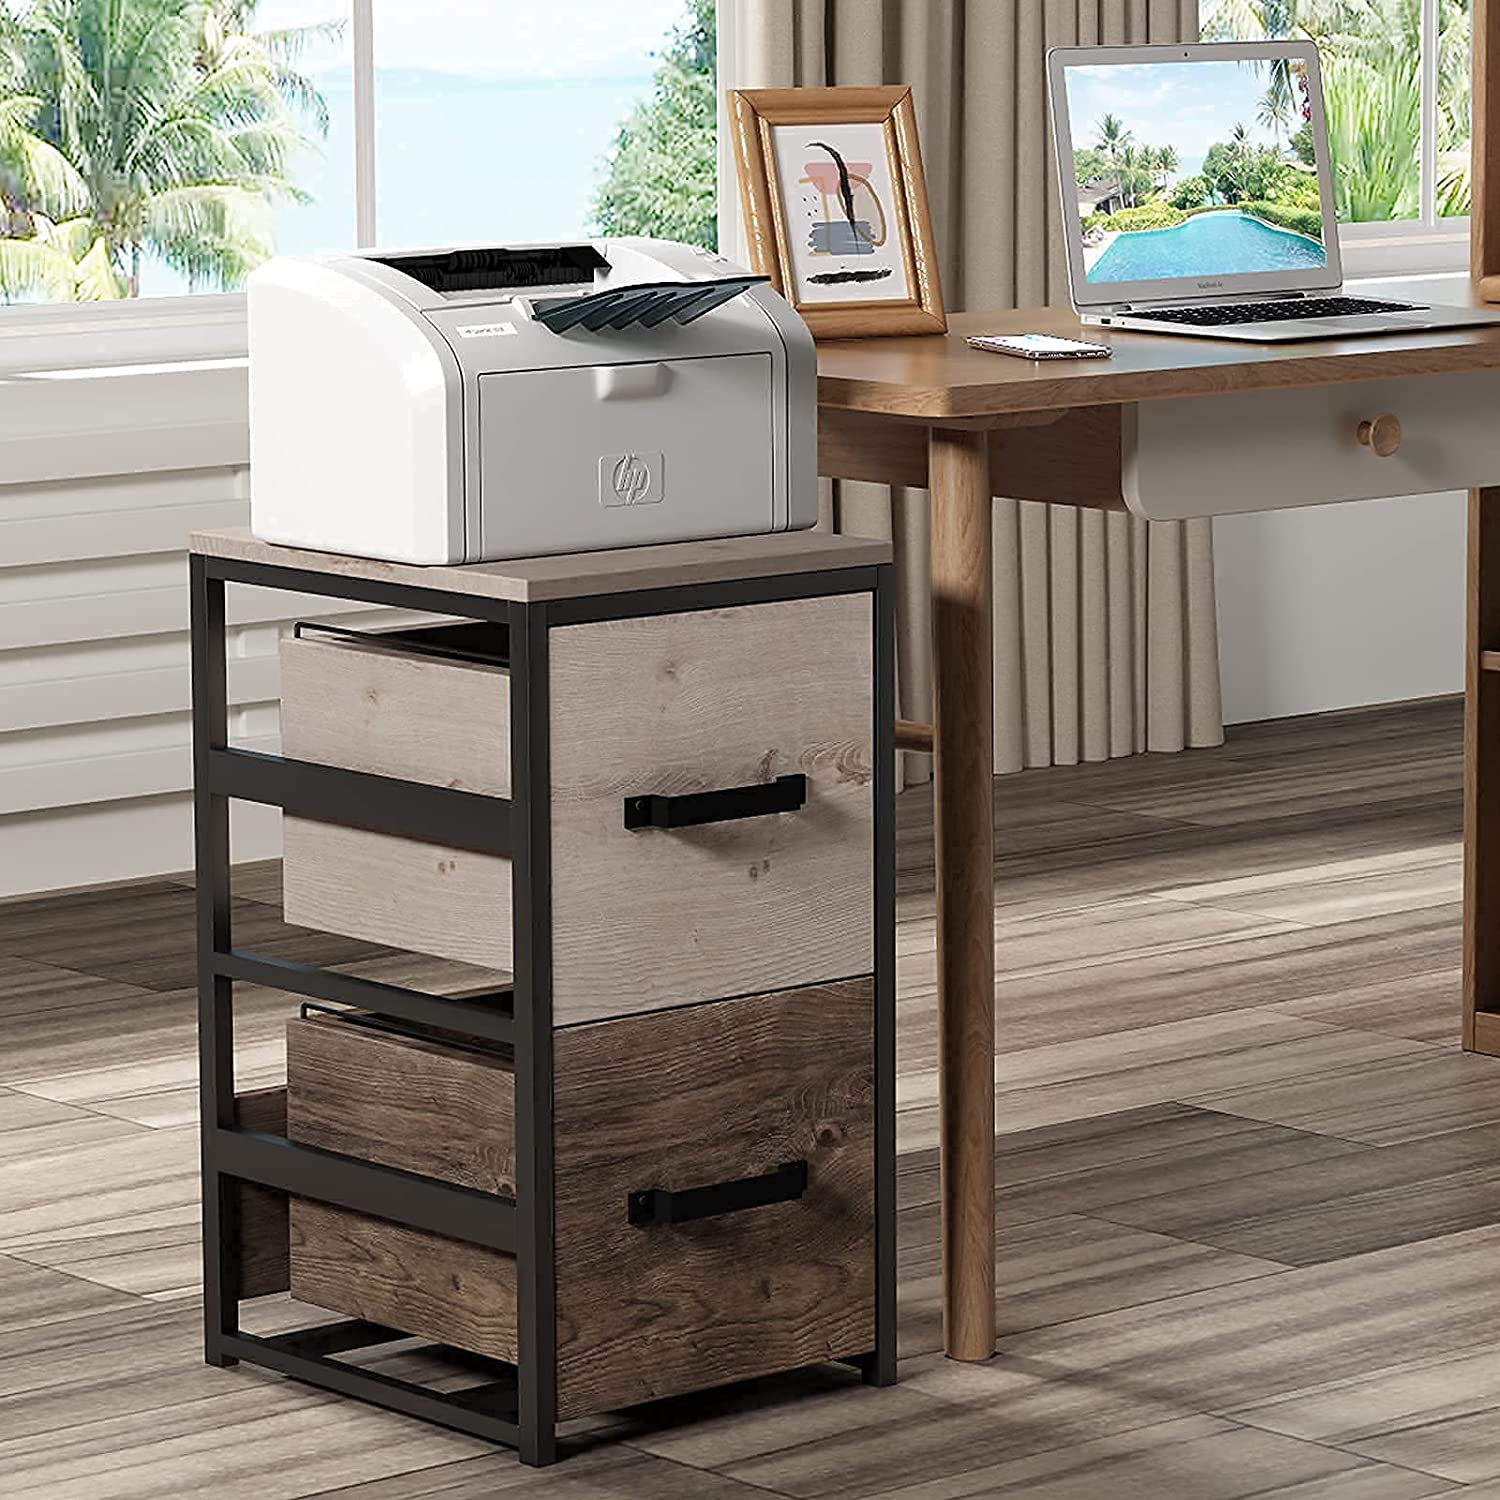 GREATMEET 2 Drawers File Cabinet for Wooden Dealing full price reduction Letter Ultra-Cheap Deals